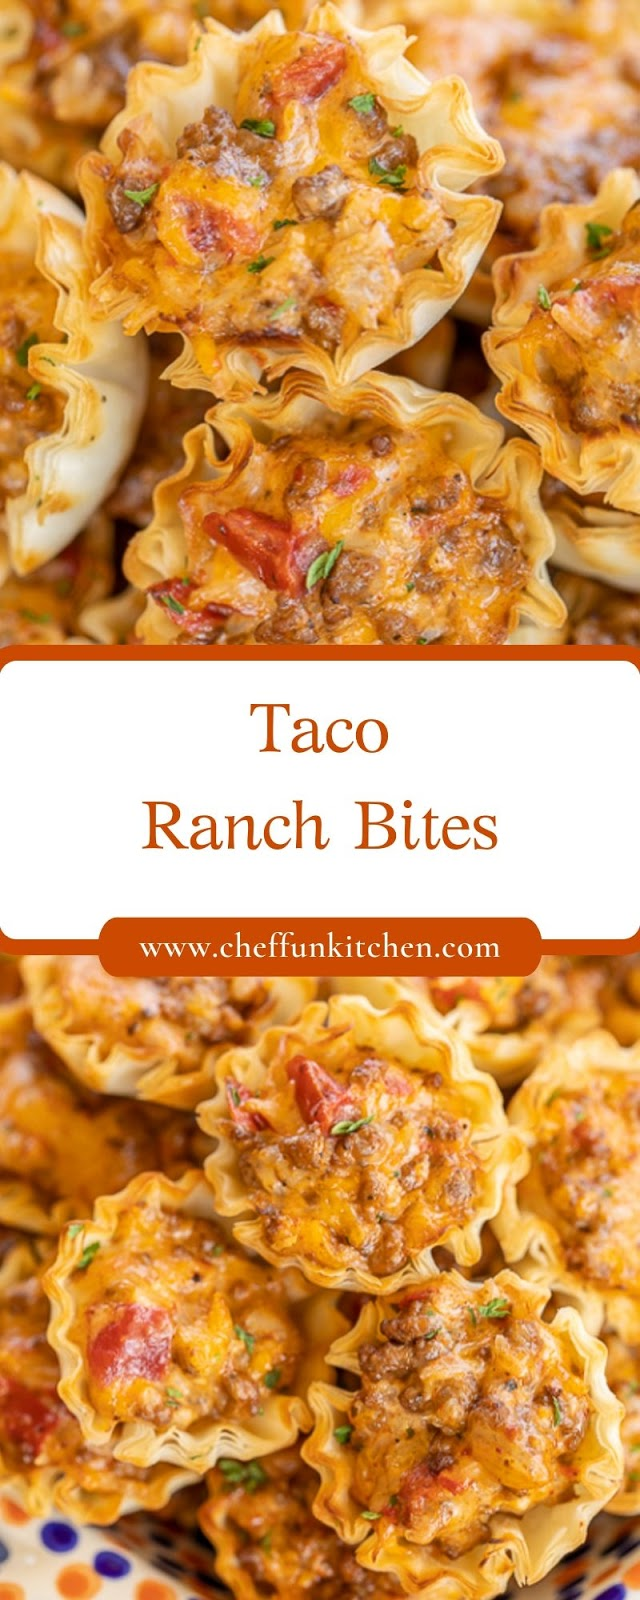 Taco Ranch Bites